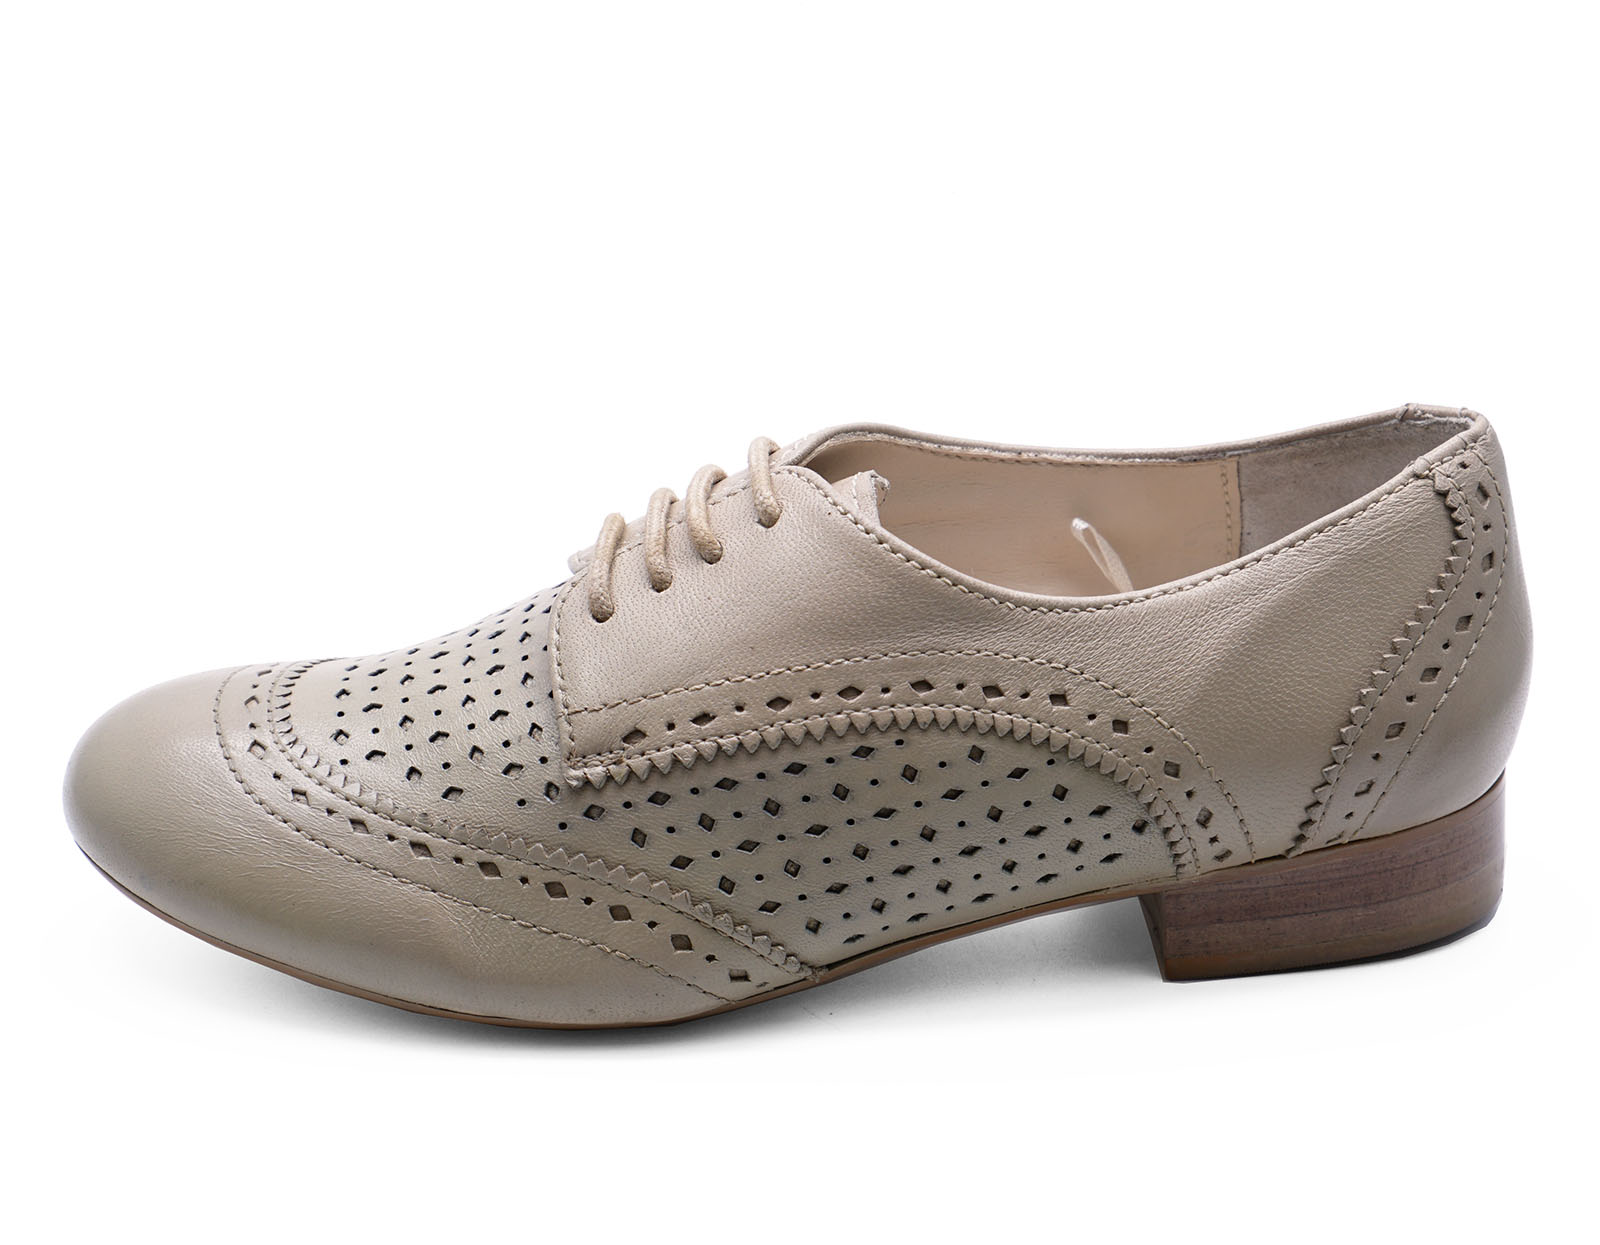 LADIES REAL LEATHER NUDE FLAT LACE-UP BROGUE LOAFERS SMART CASUAL SHOES UK 3-8